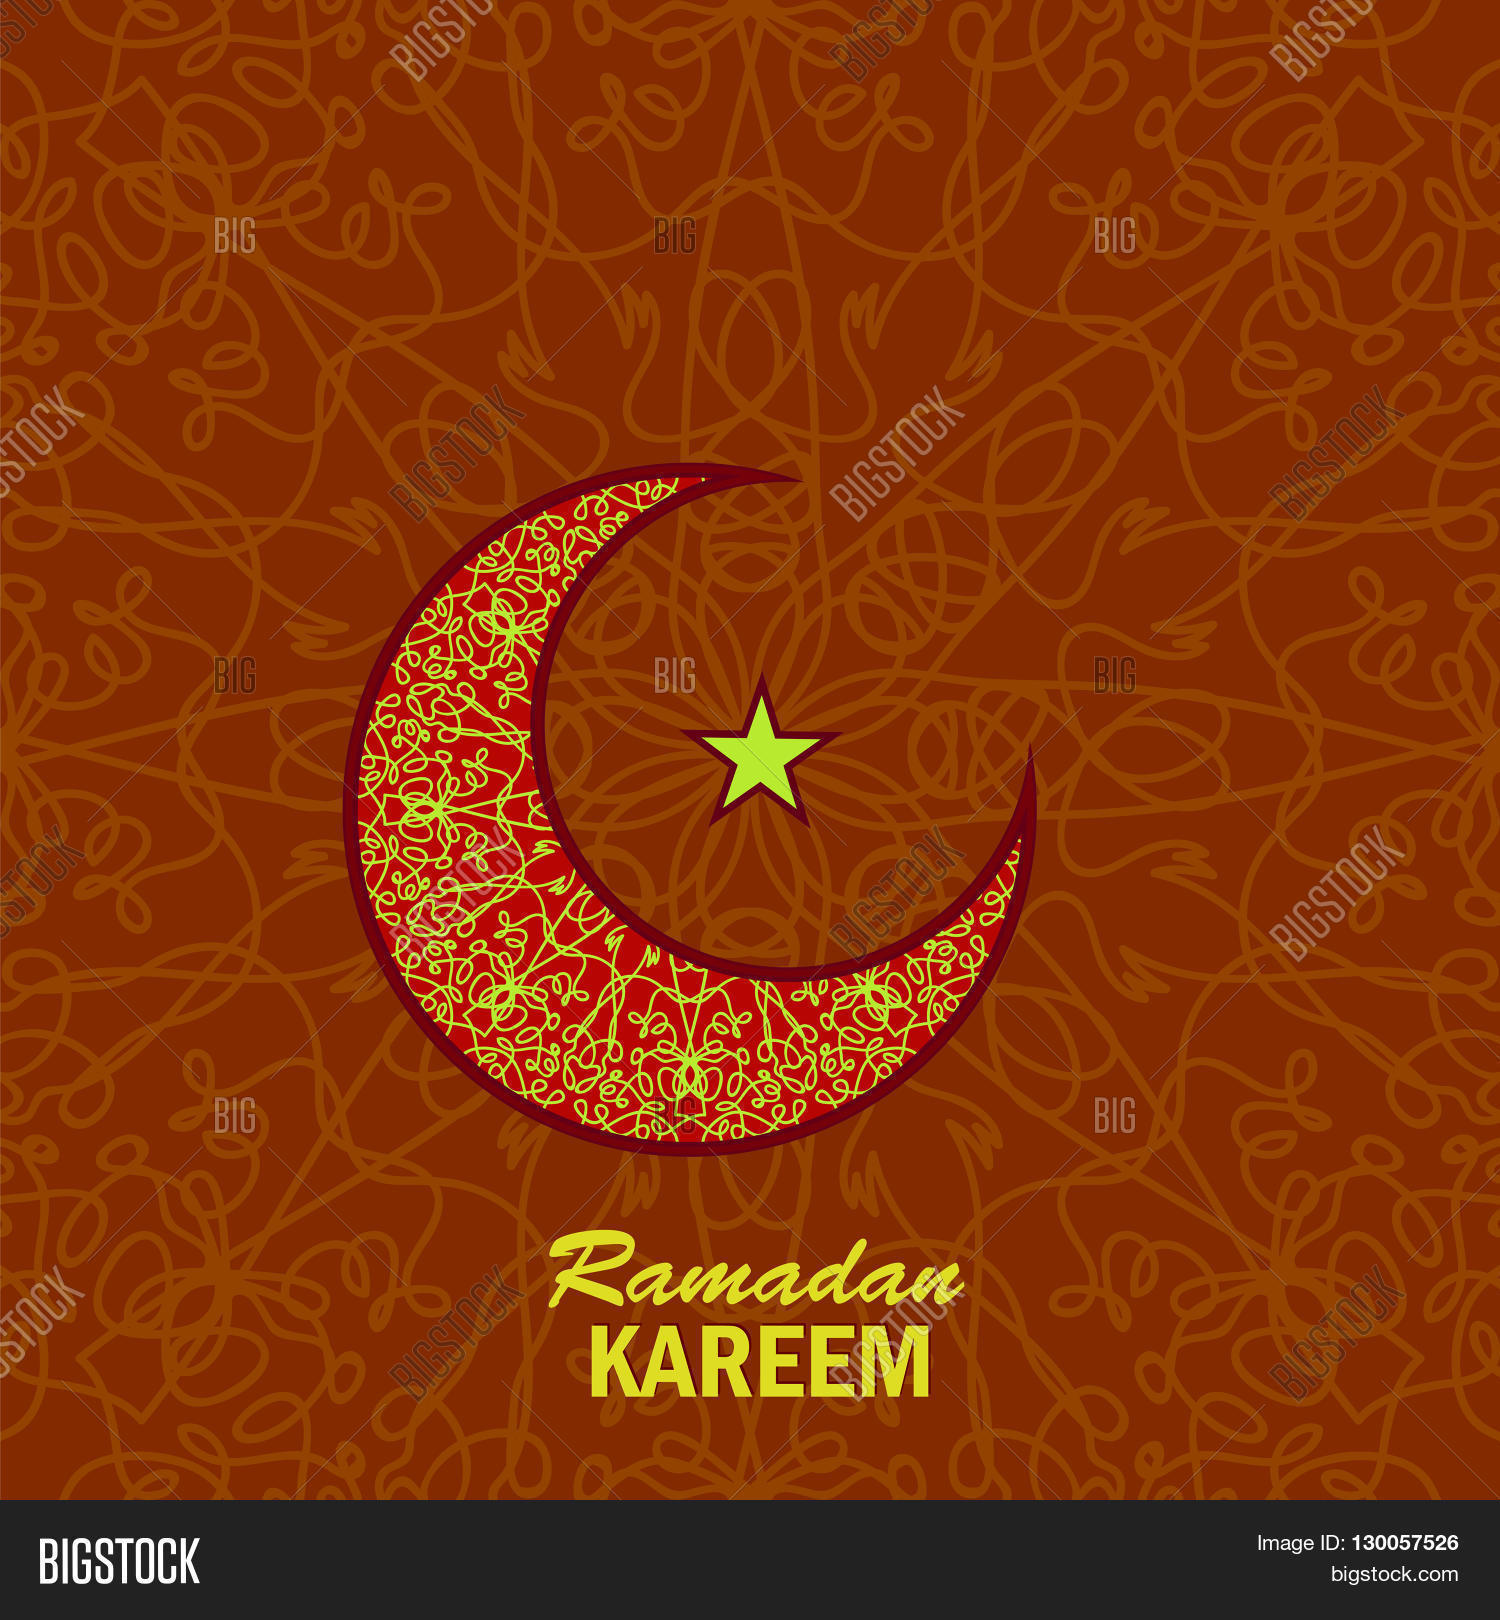 Ramadan Greetings Image Photo Free Trial Bigstock